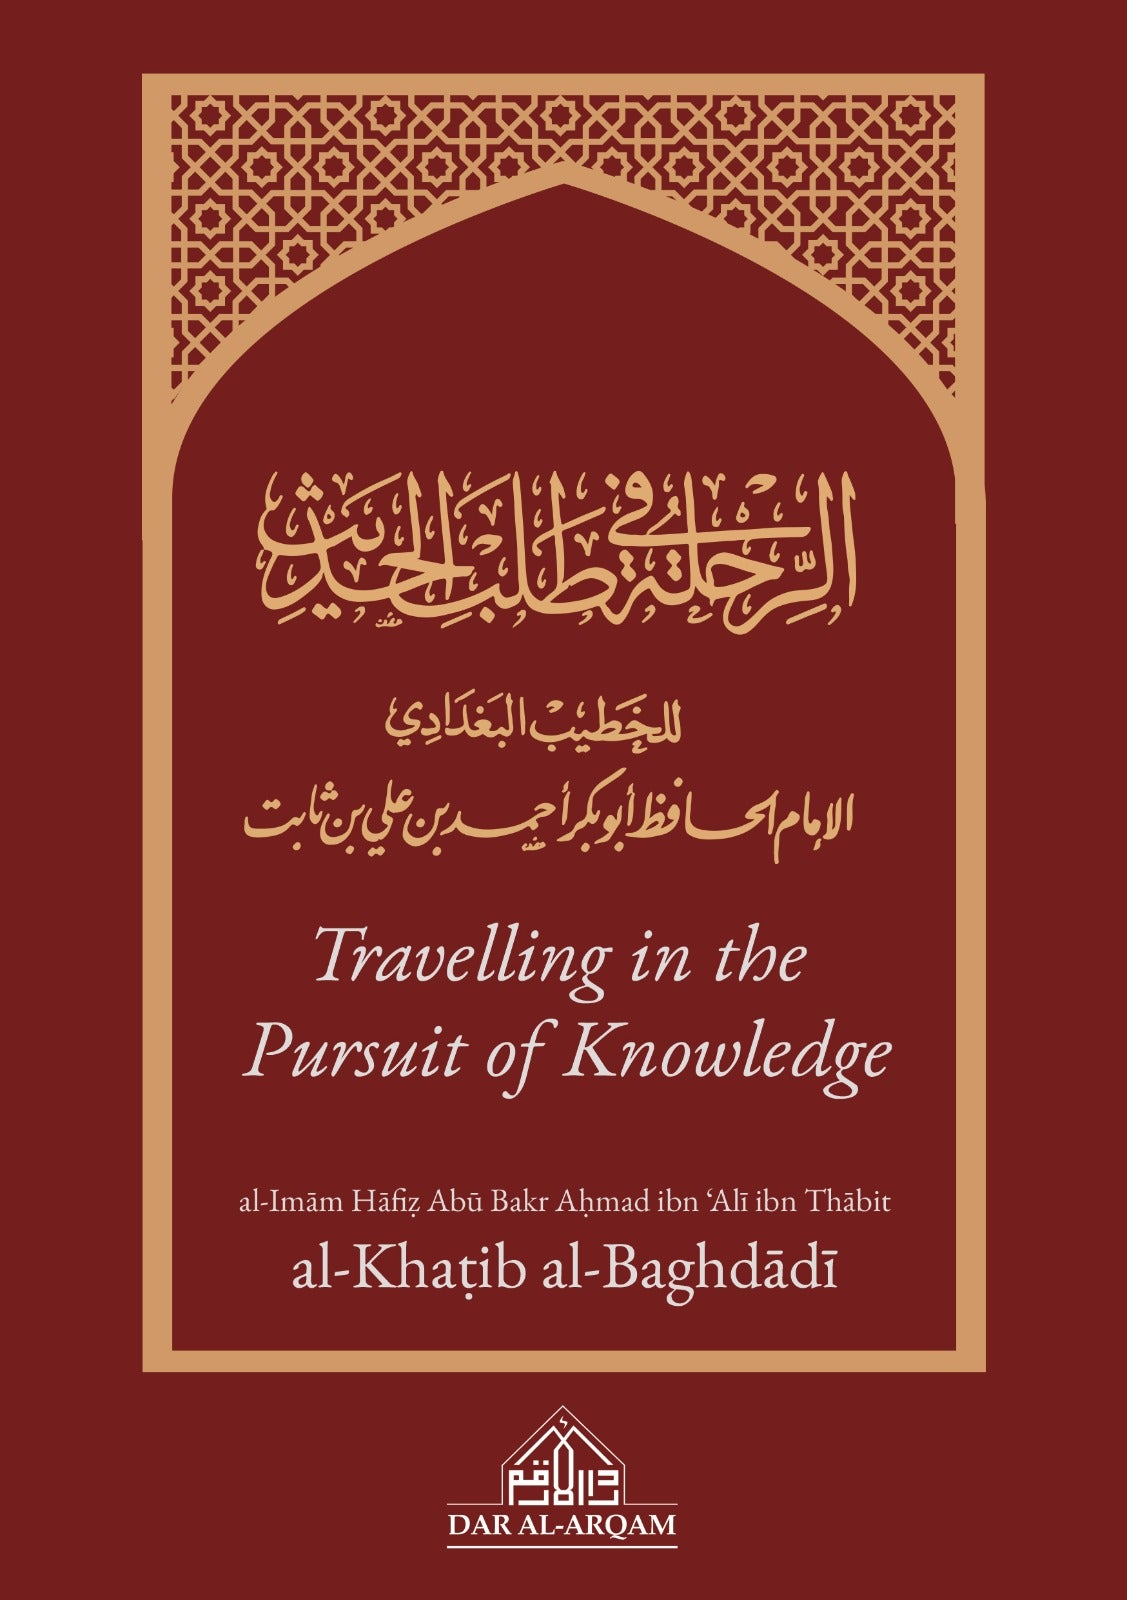 Image of Travelling in the Pursuit of Knowledge by Khateeb al-Baghdadi